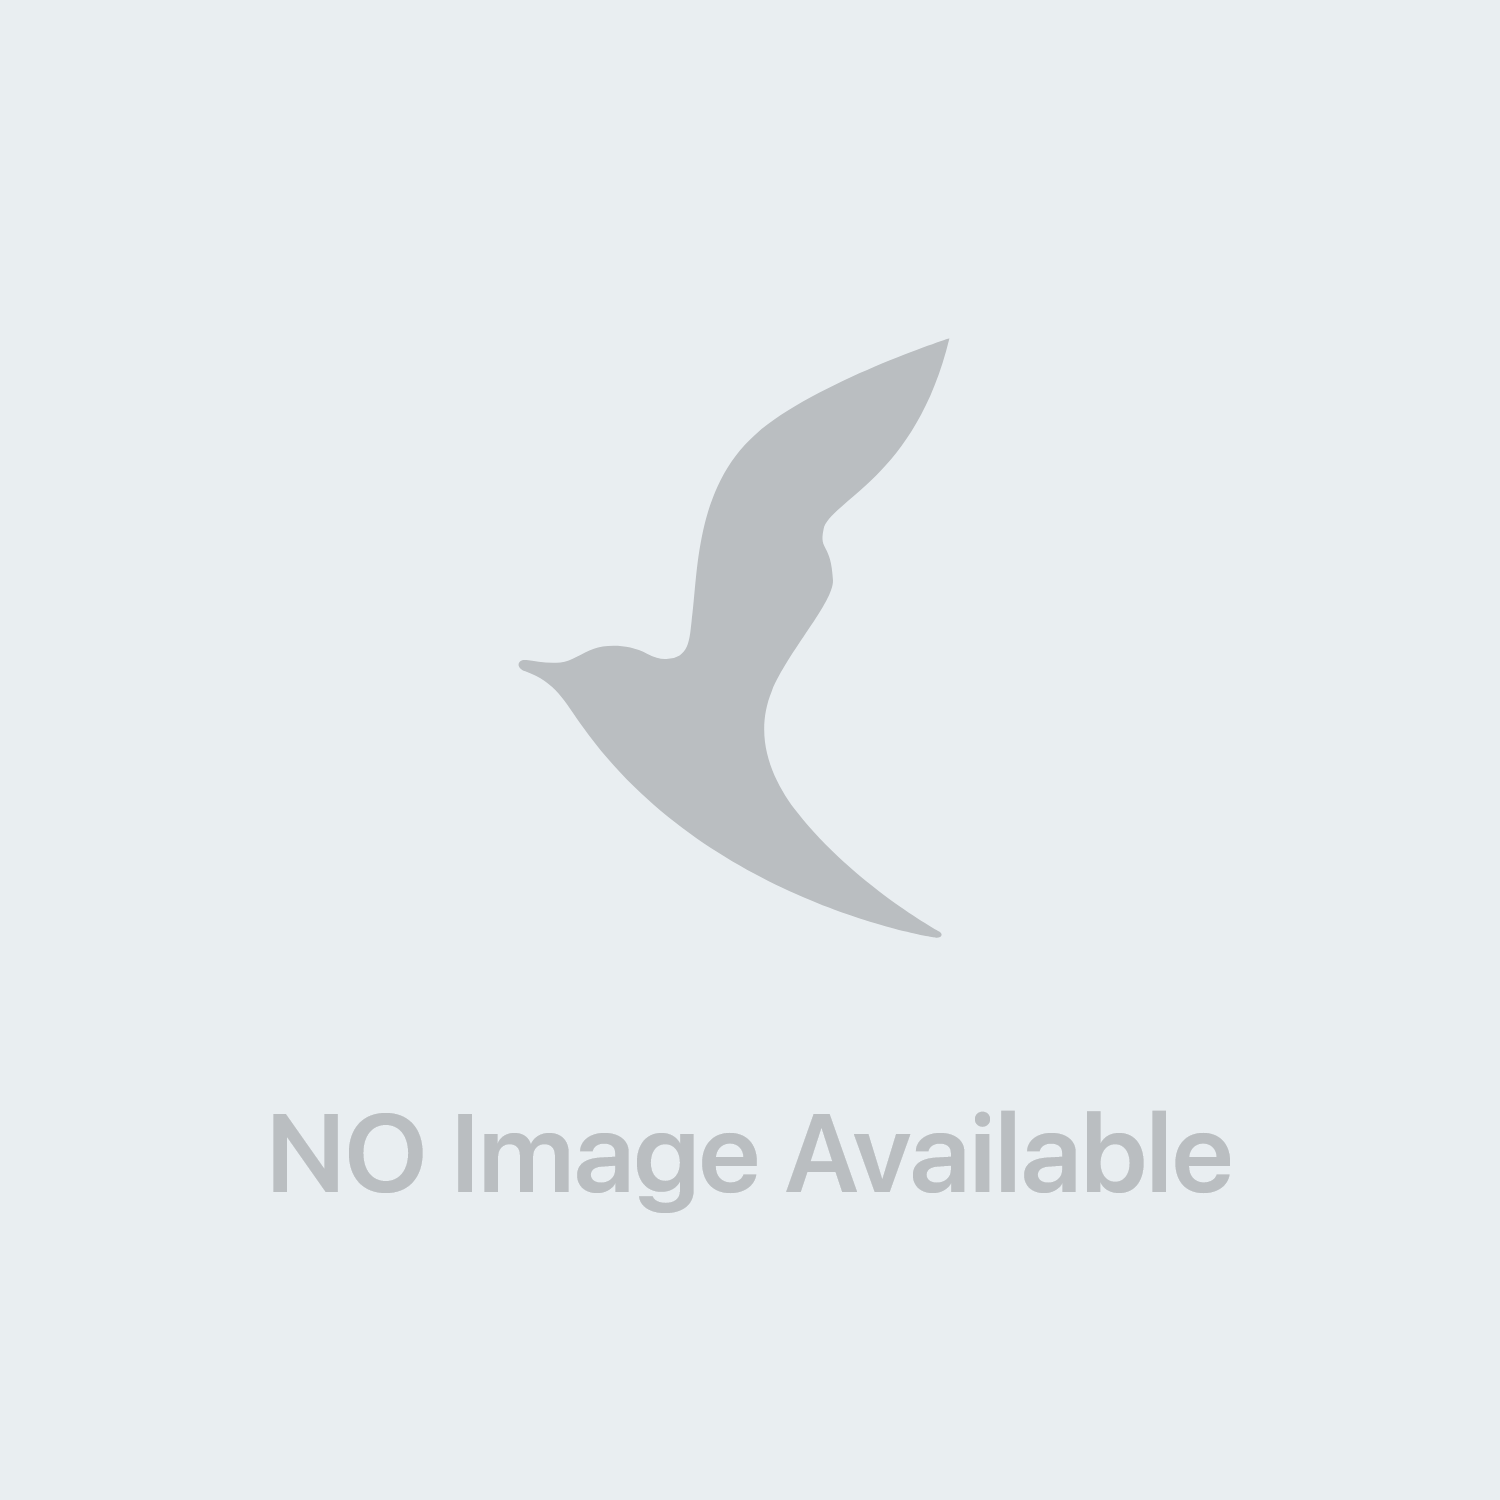 Cotidierbe Integratore Transito Intestinale 45 Compresse 400 mg